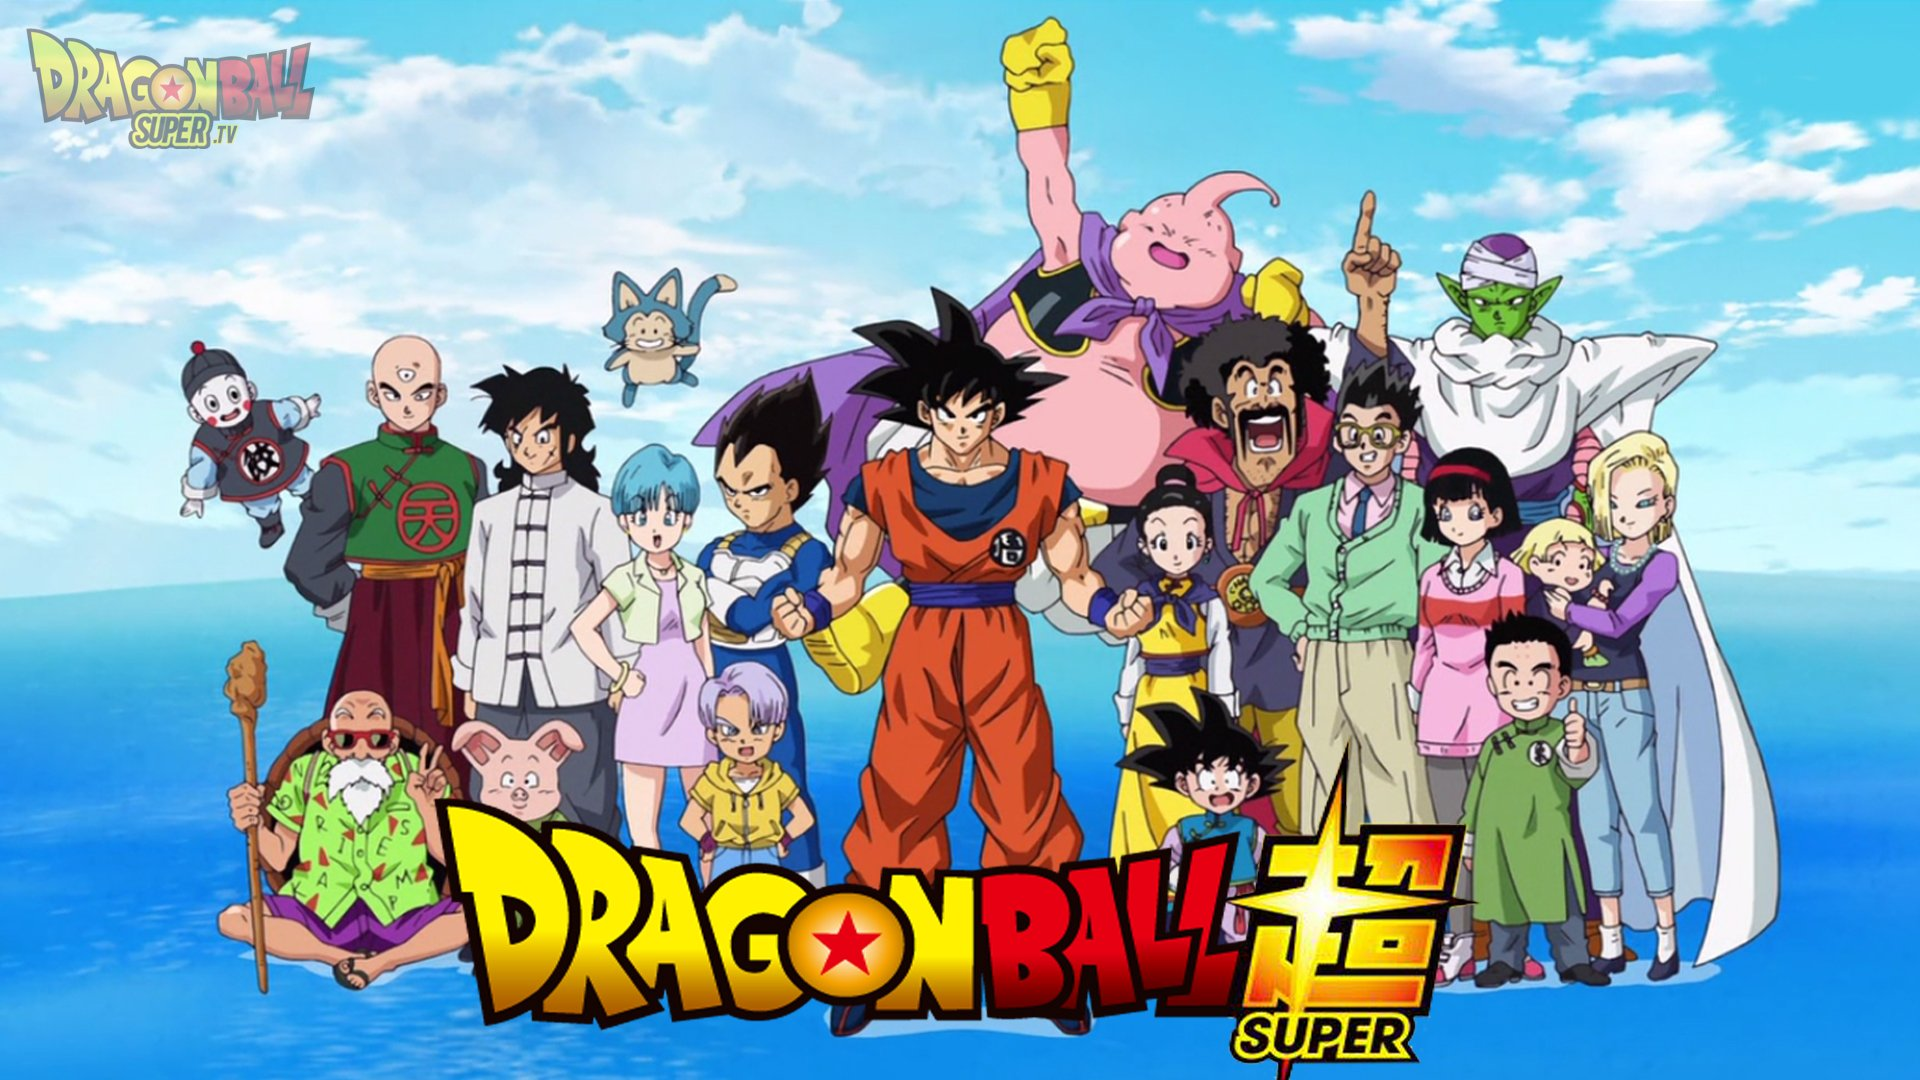 Dragon Ball Super Wallpaper HD Picture tag Dragonball Super 1920x1080